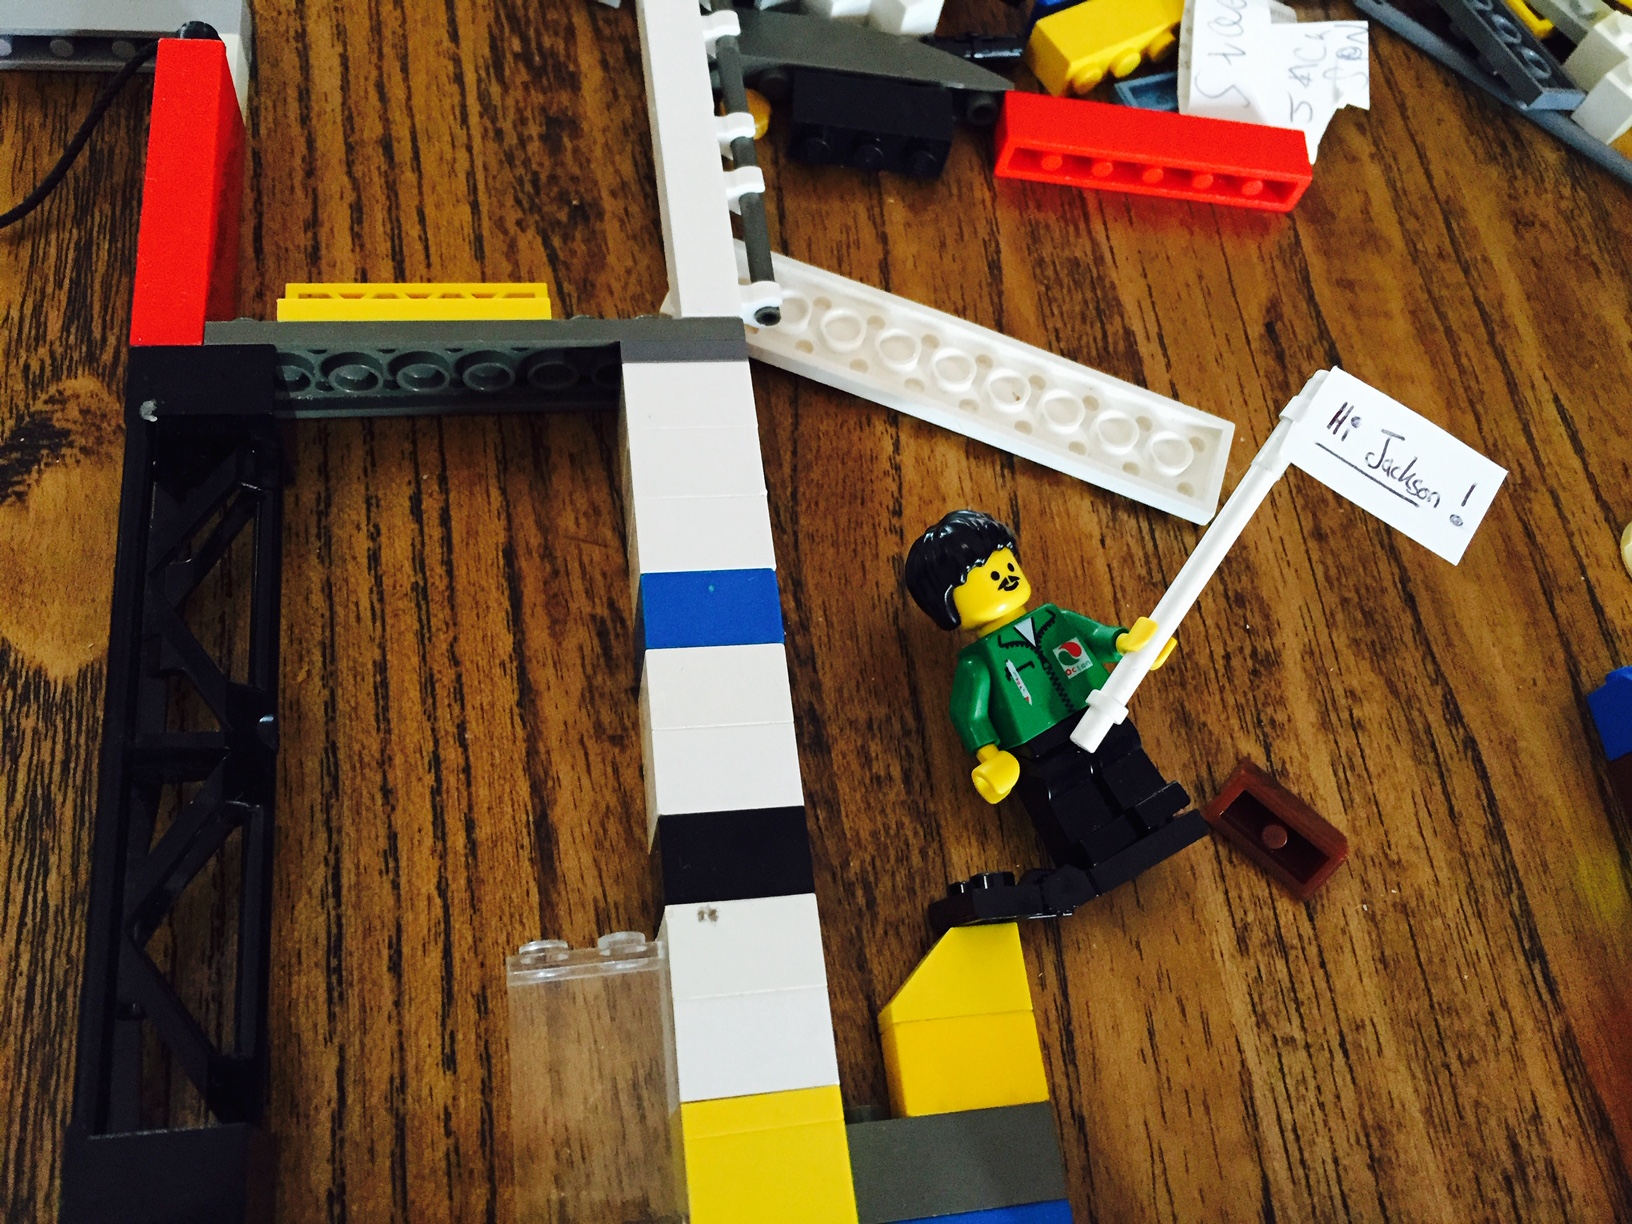 Lego creating and making